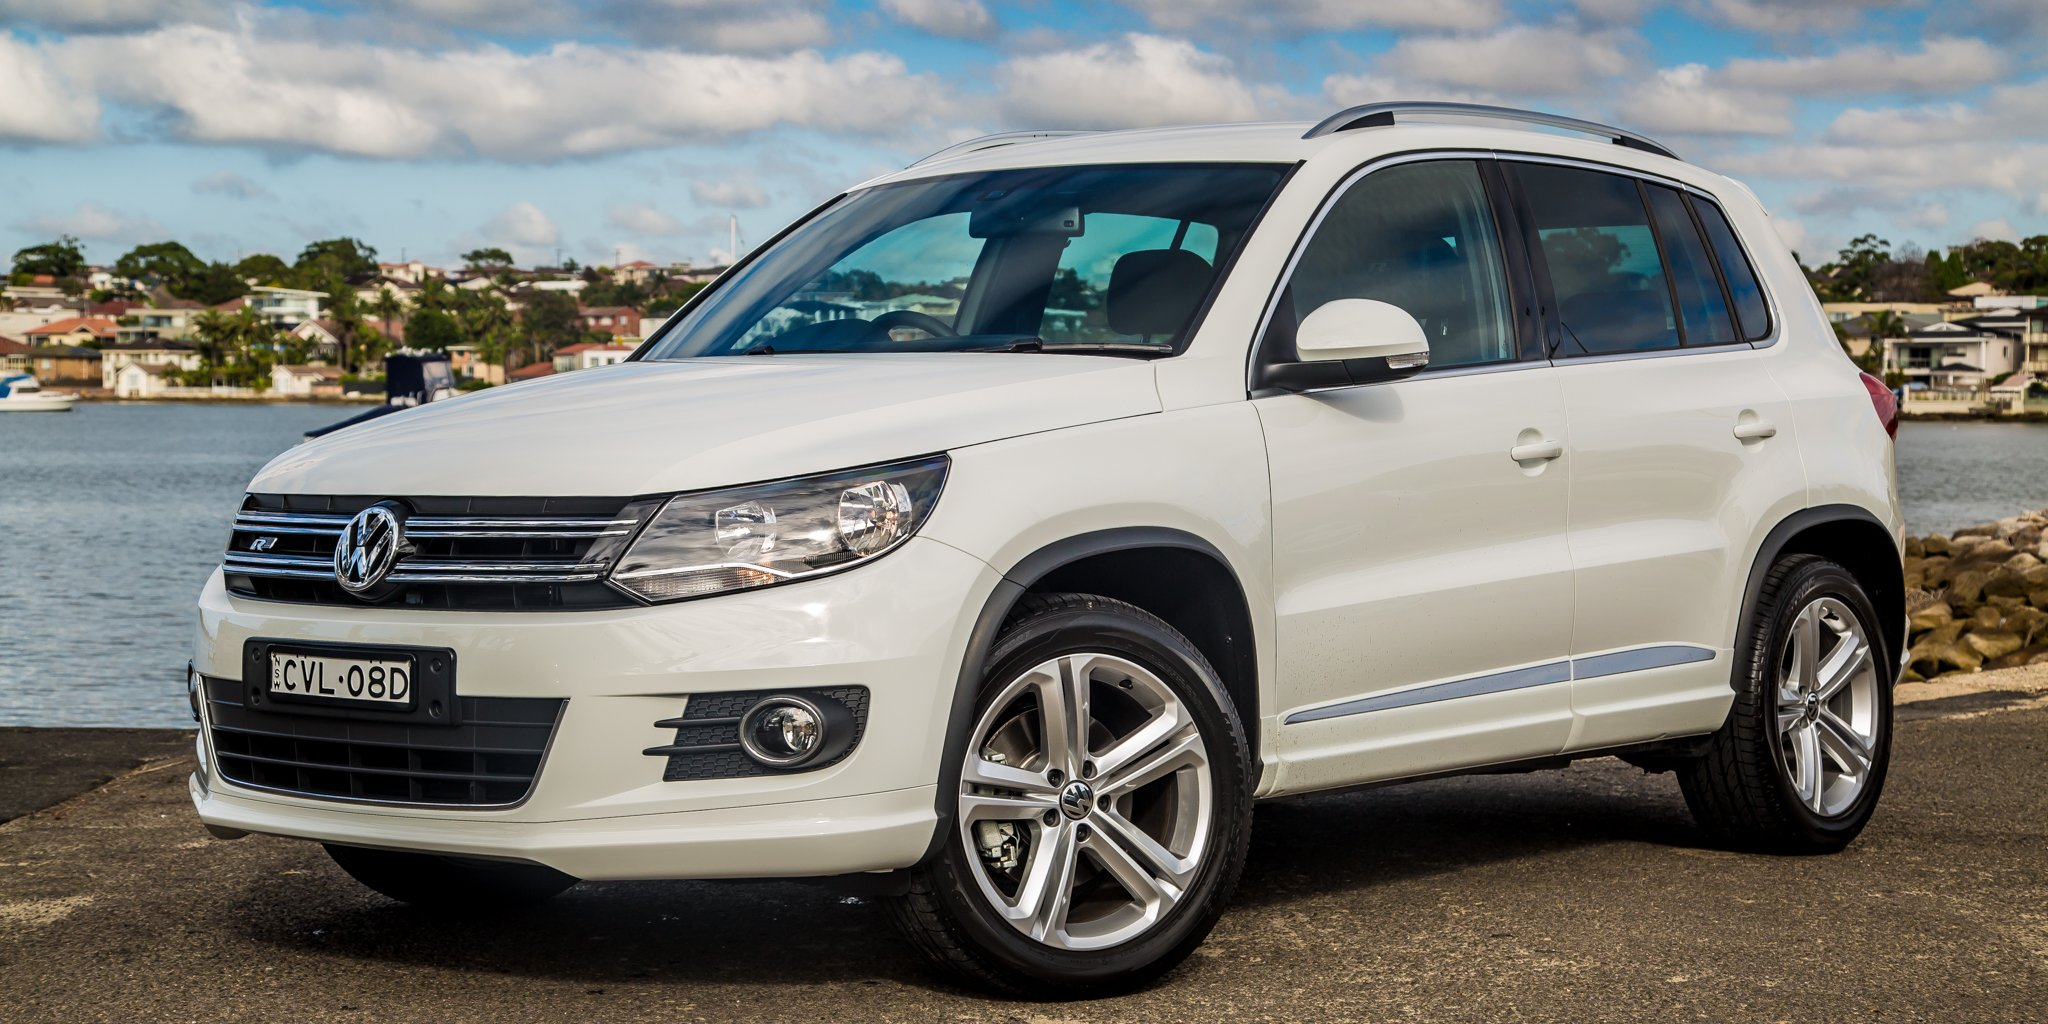 2015 tiguan specs 2017 2018 best cars reviews. Black Bedroom Furniture Sets. Home Design Ideas